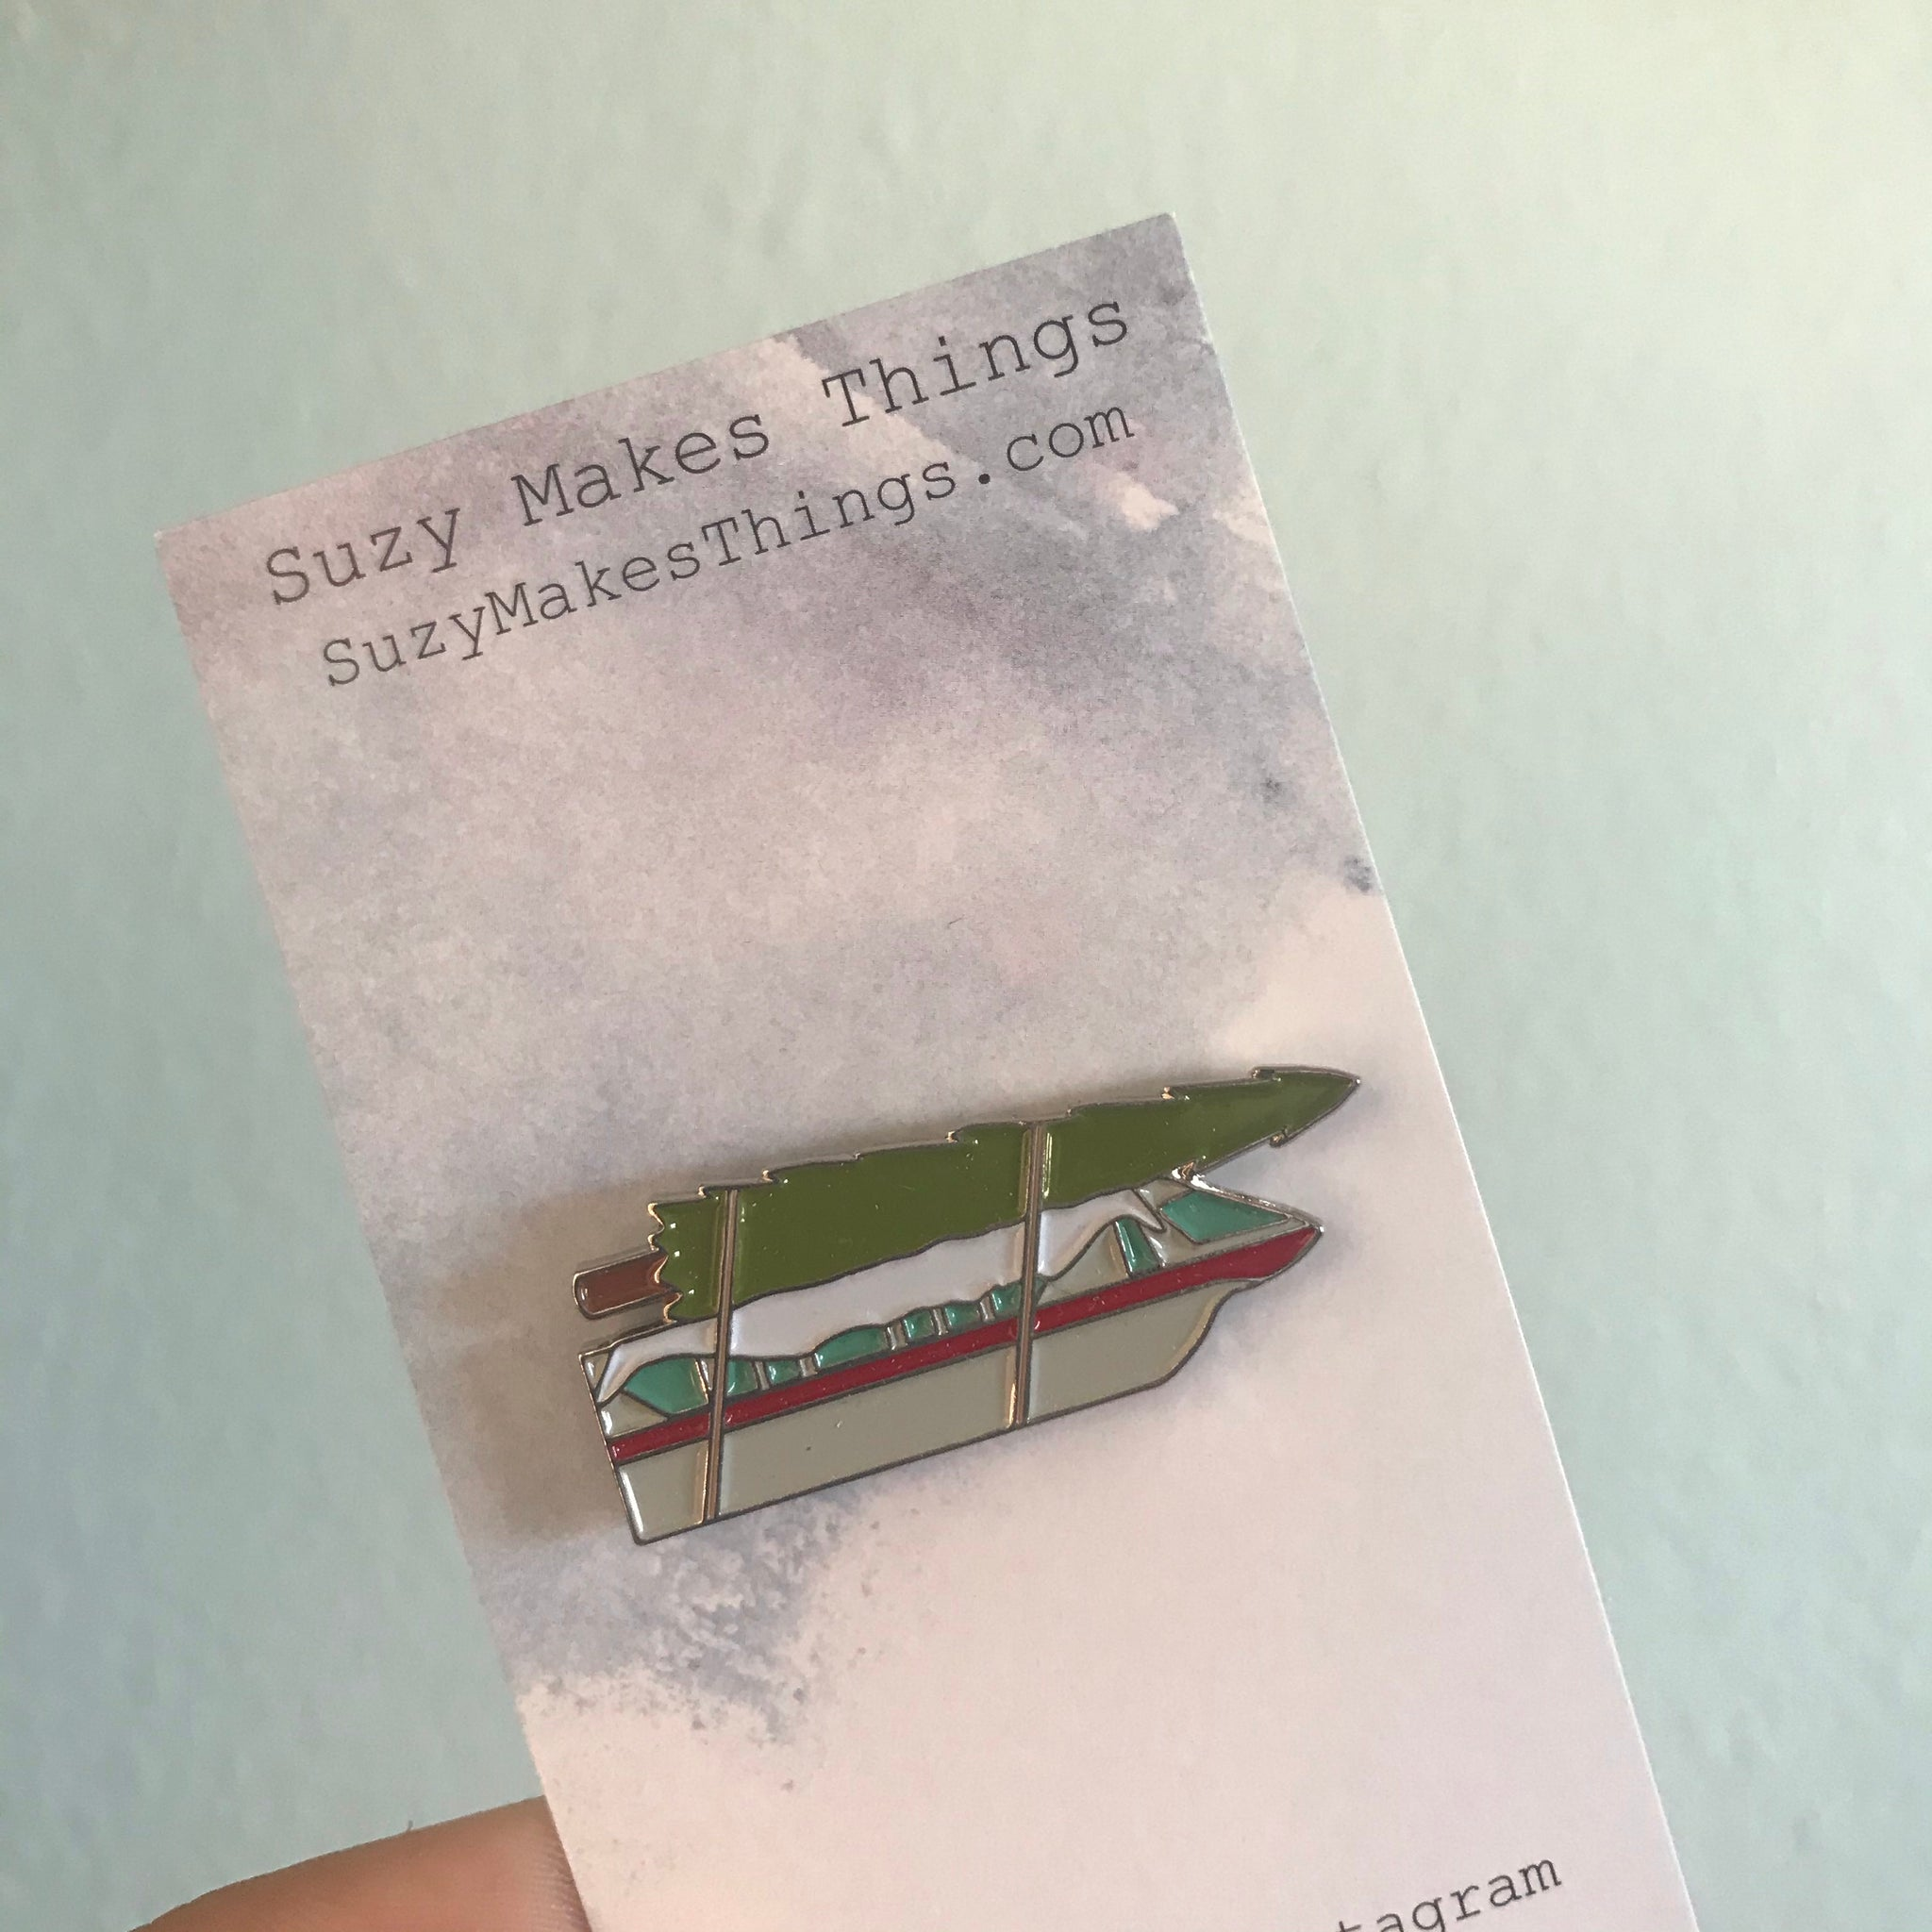 Home for the Holidays Christmas Tree Monorail Pin